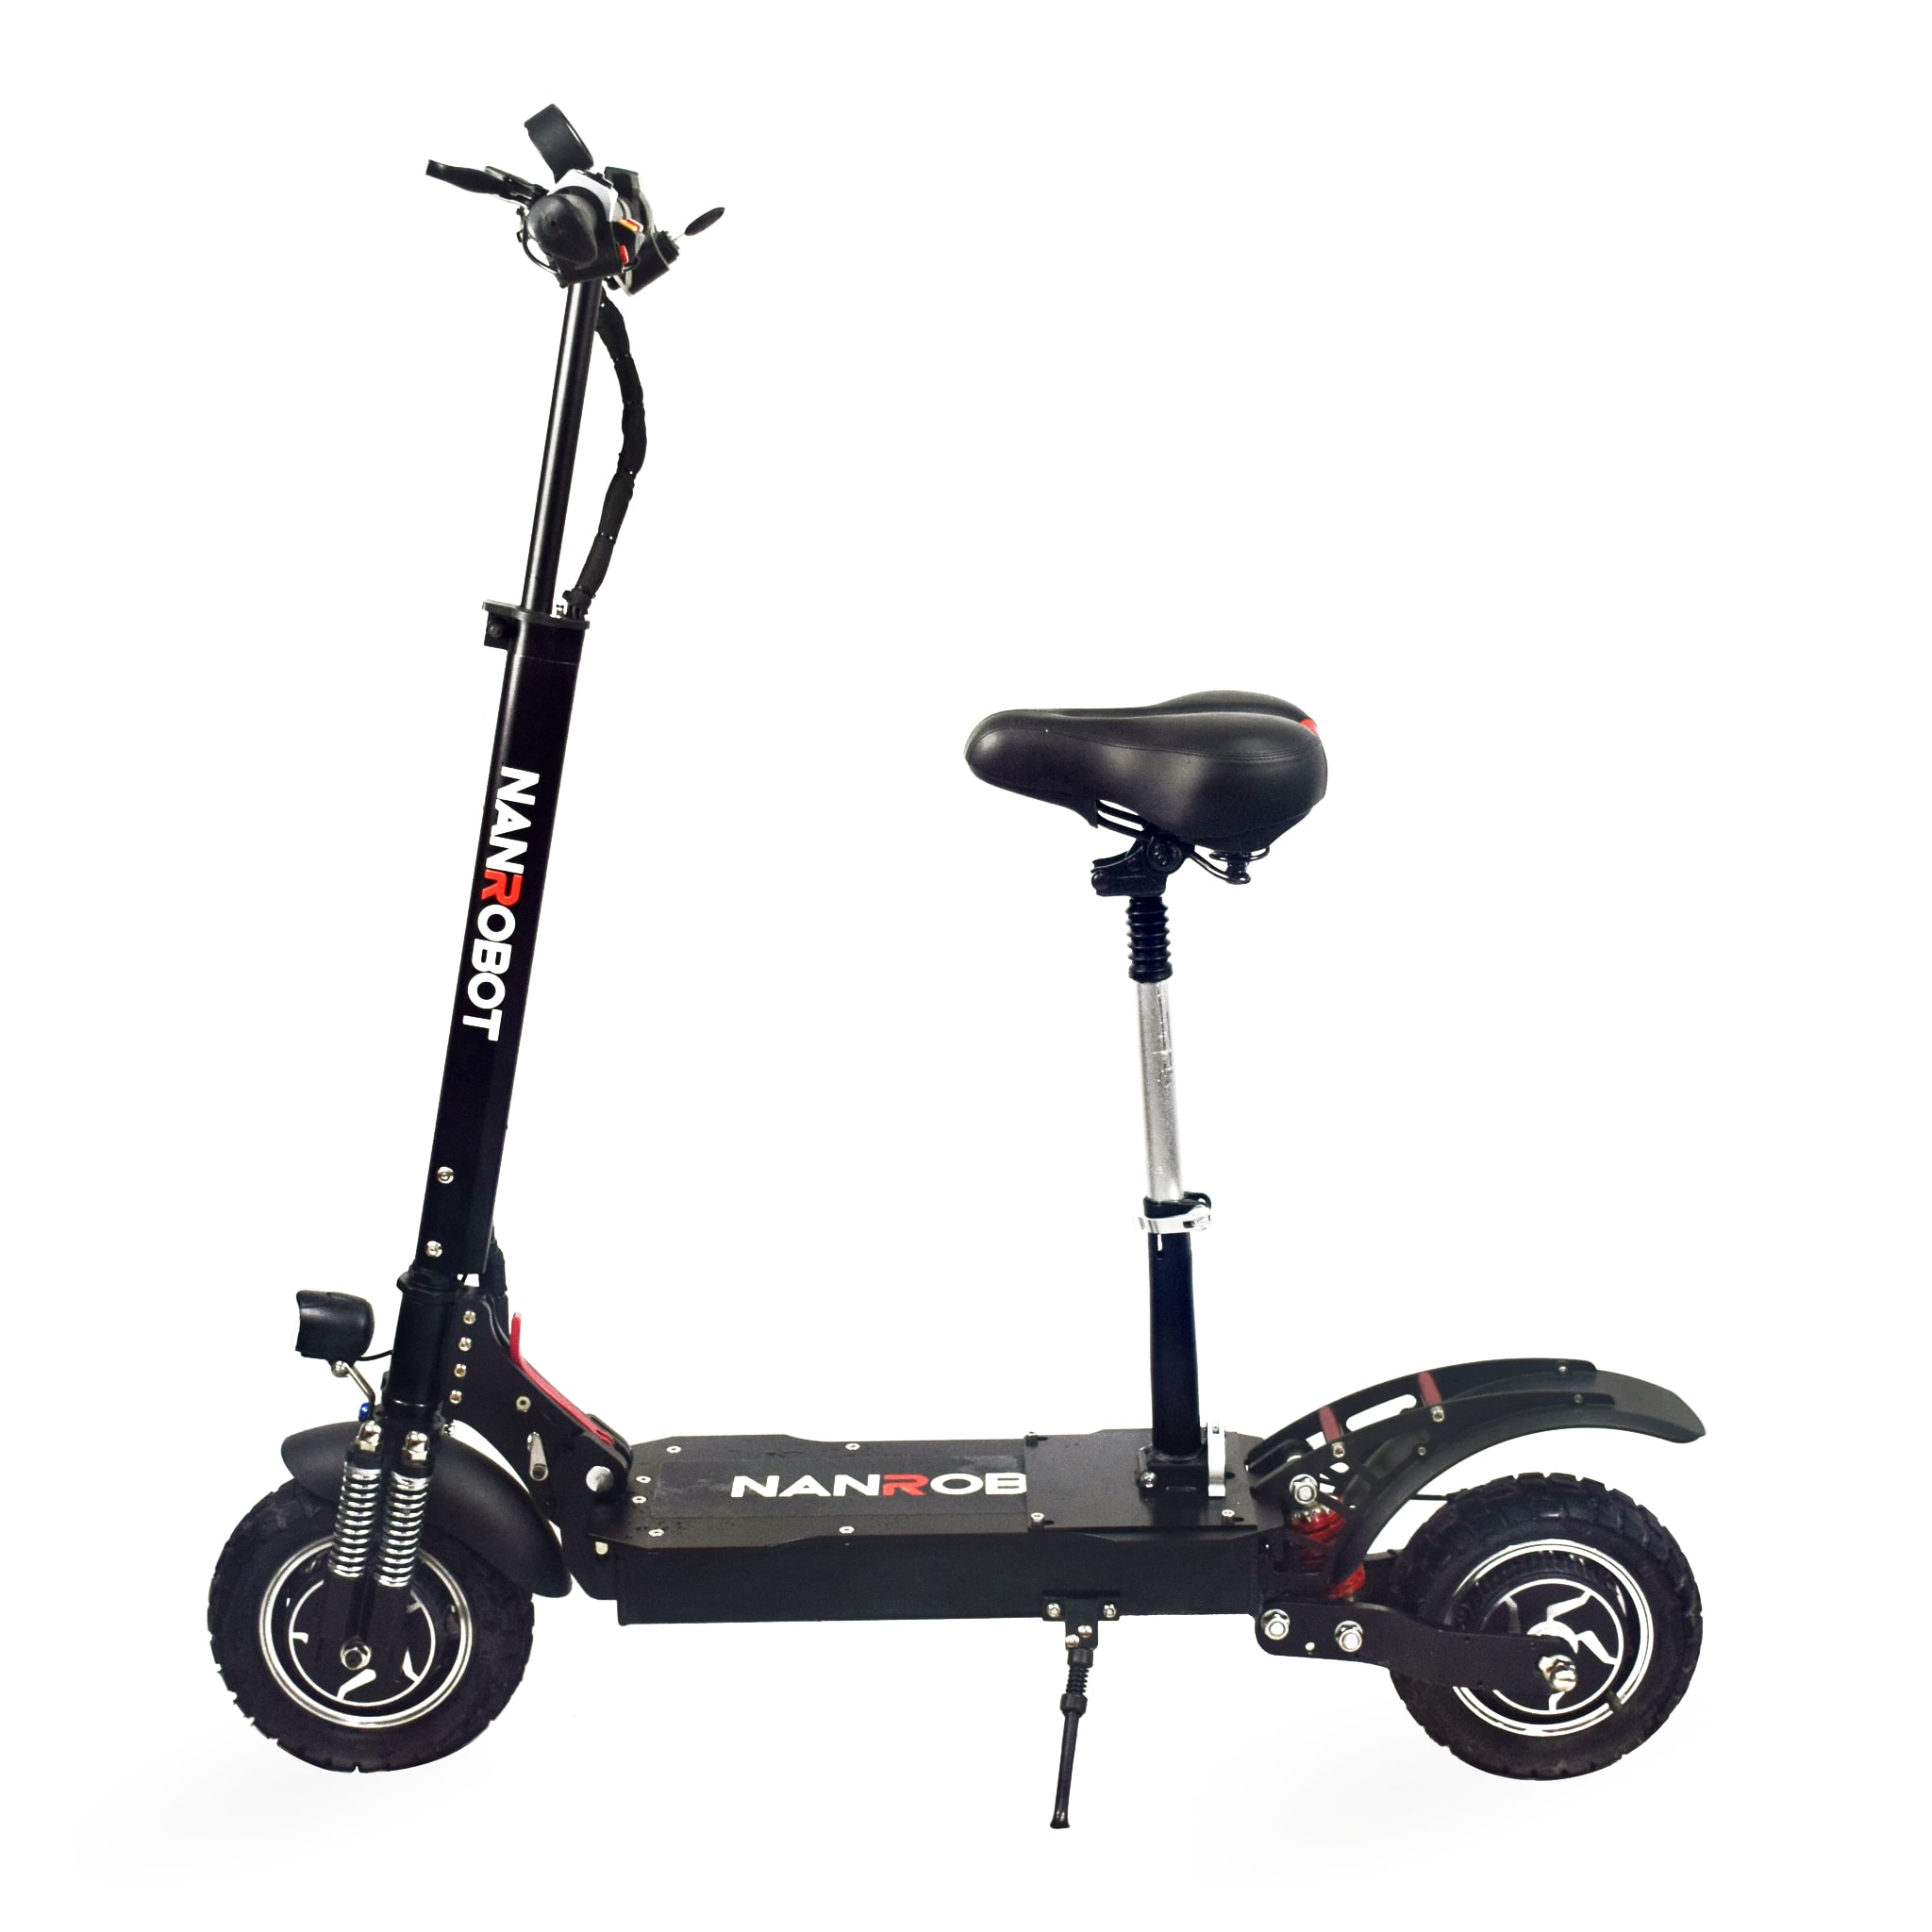 Nanrobot D4+ electric scooter review 2